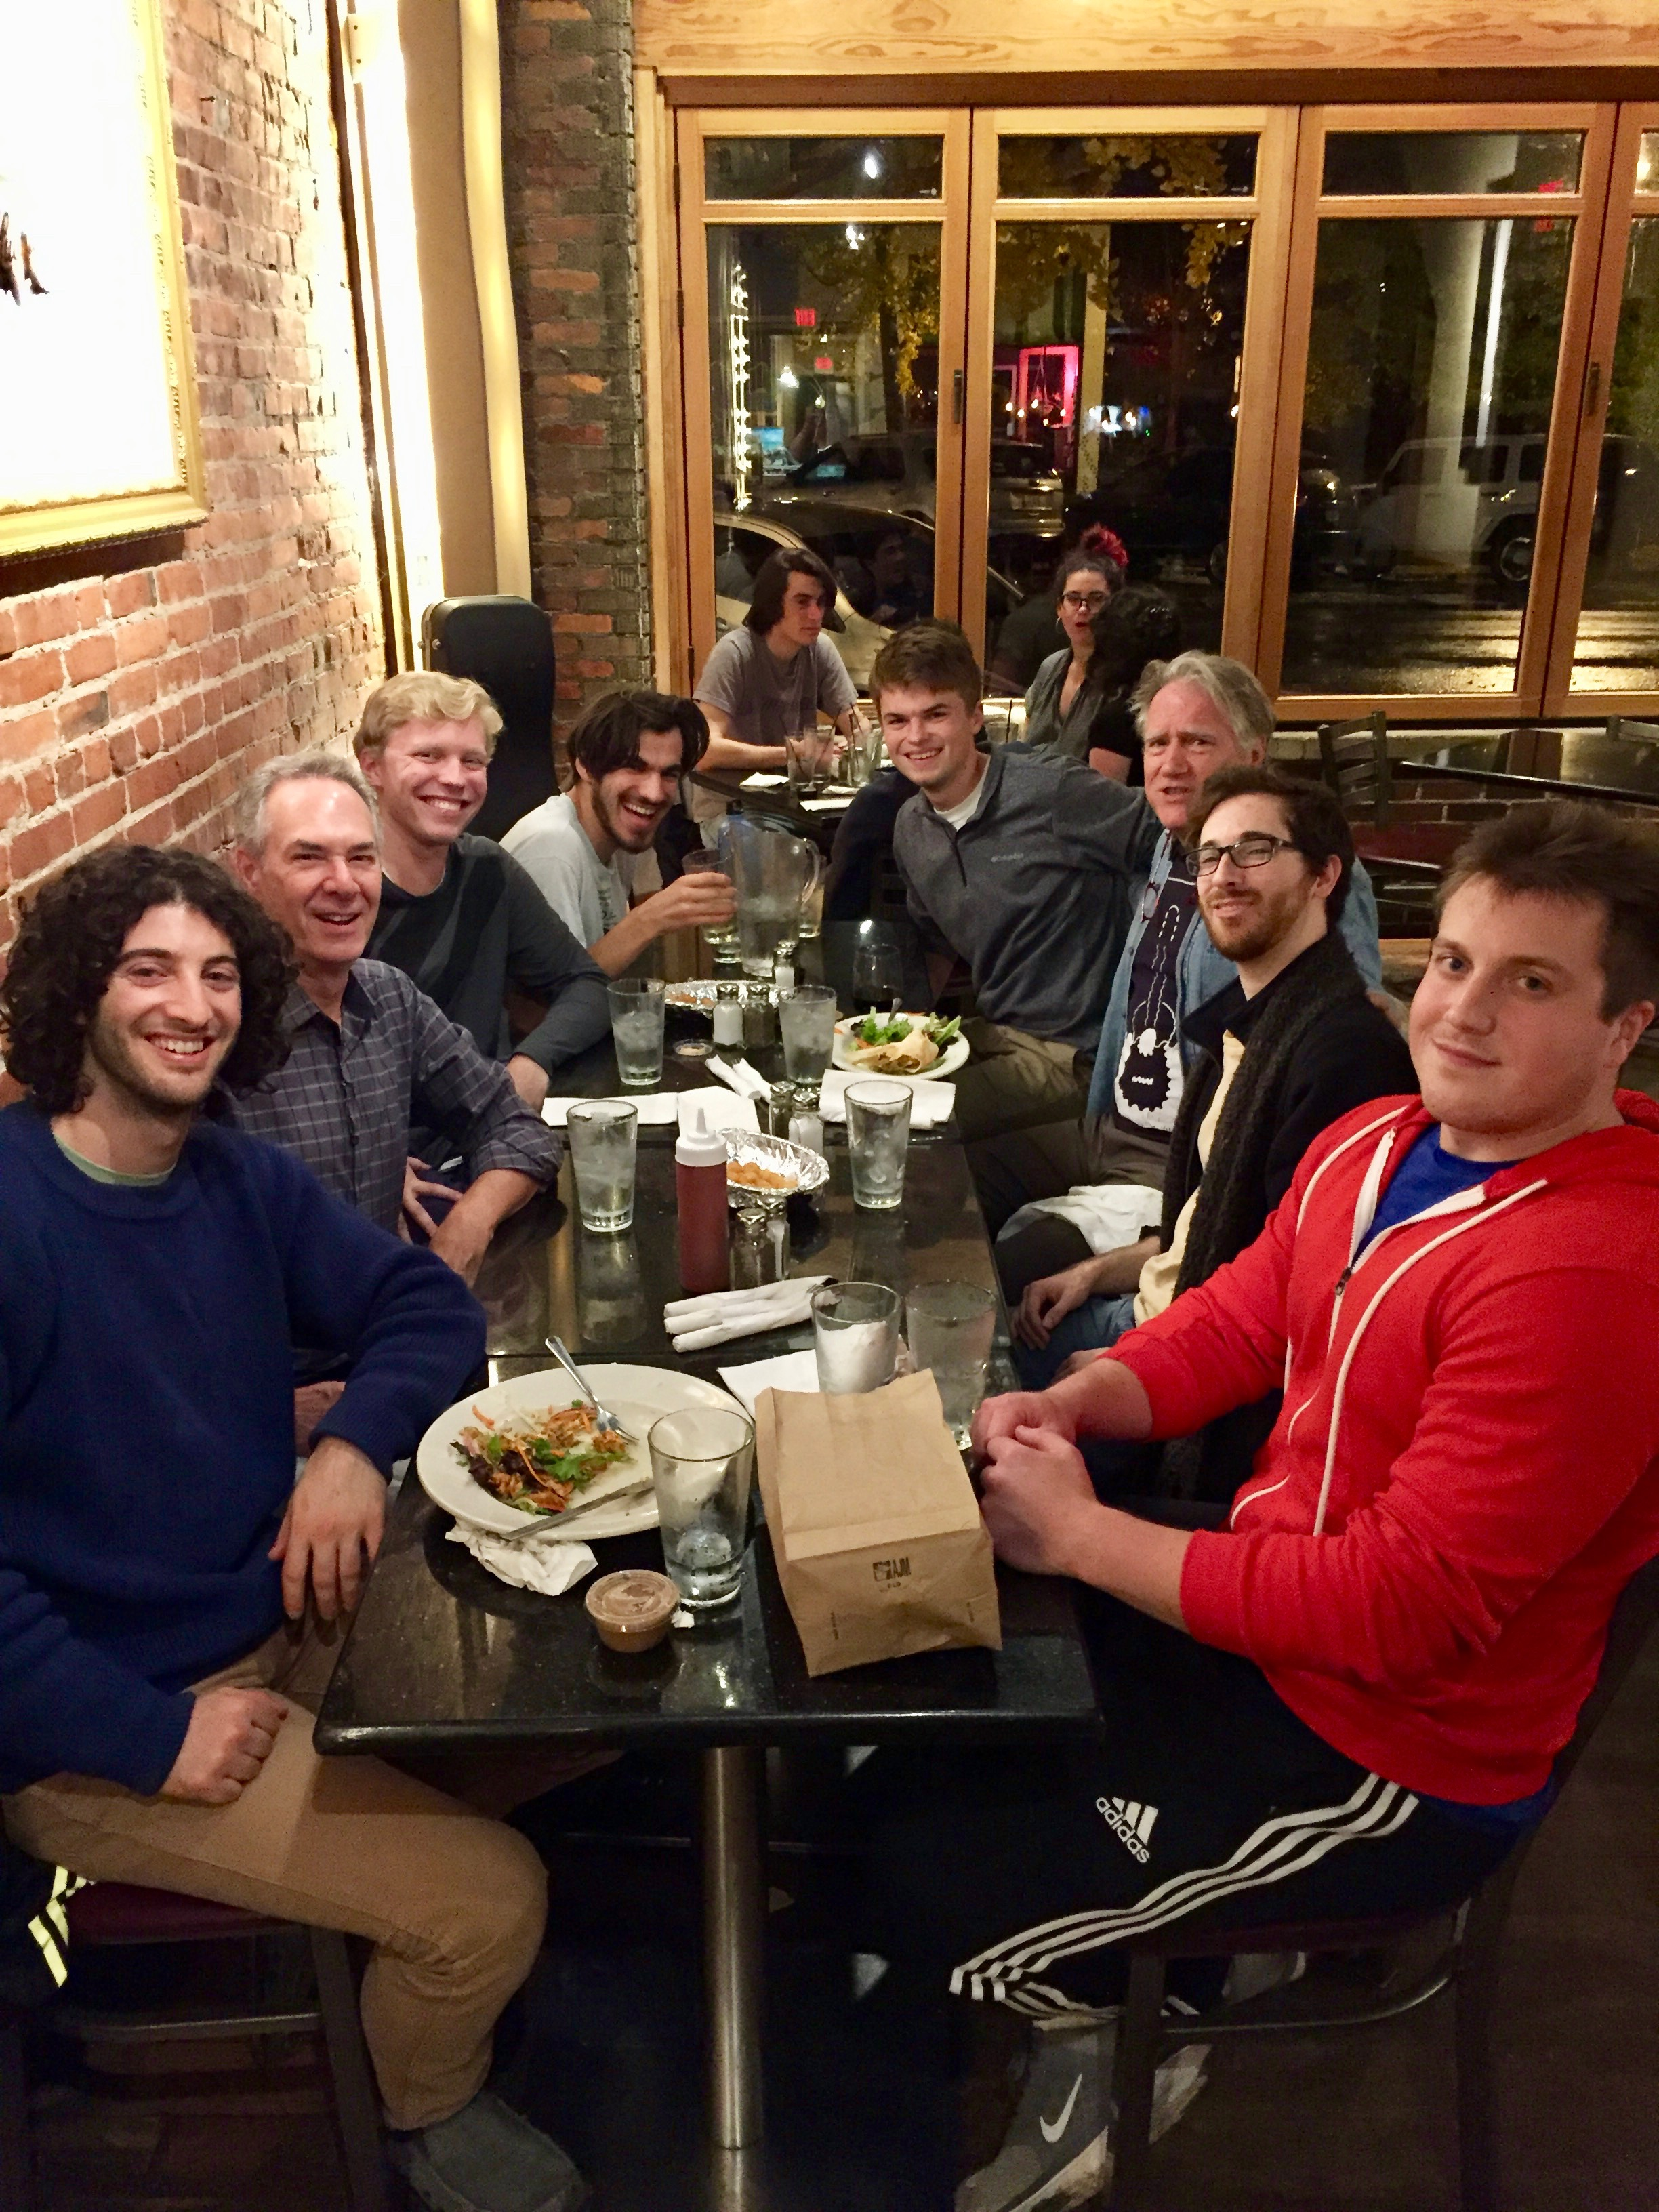 At our customary after-hours hang, the Feve. Left-to-right: Philip Lutz '15 (visiting), Stephen Aron, Aidan Wiley Lippke, Mohit Dubey, Craig Slagh, Benjamin Verdery, Brian King and Stephen Fazio.